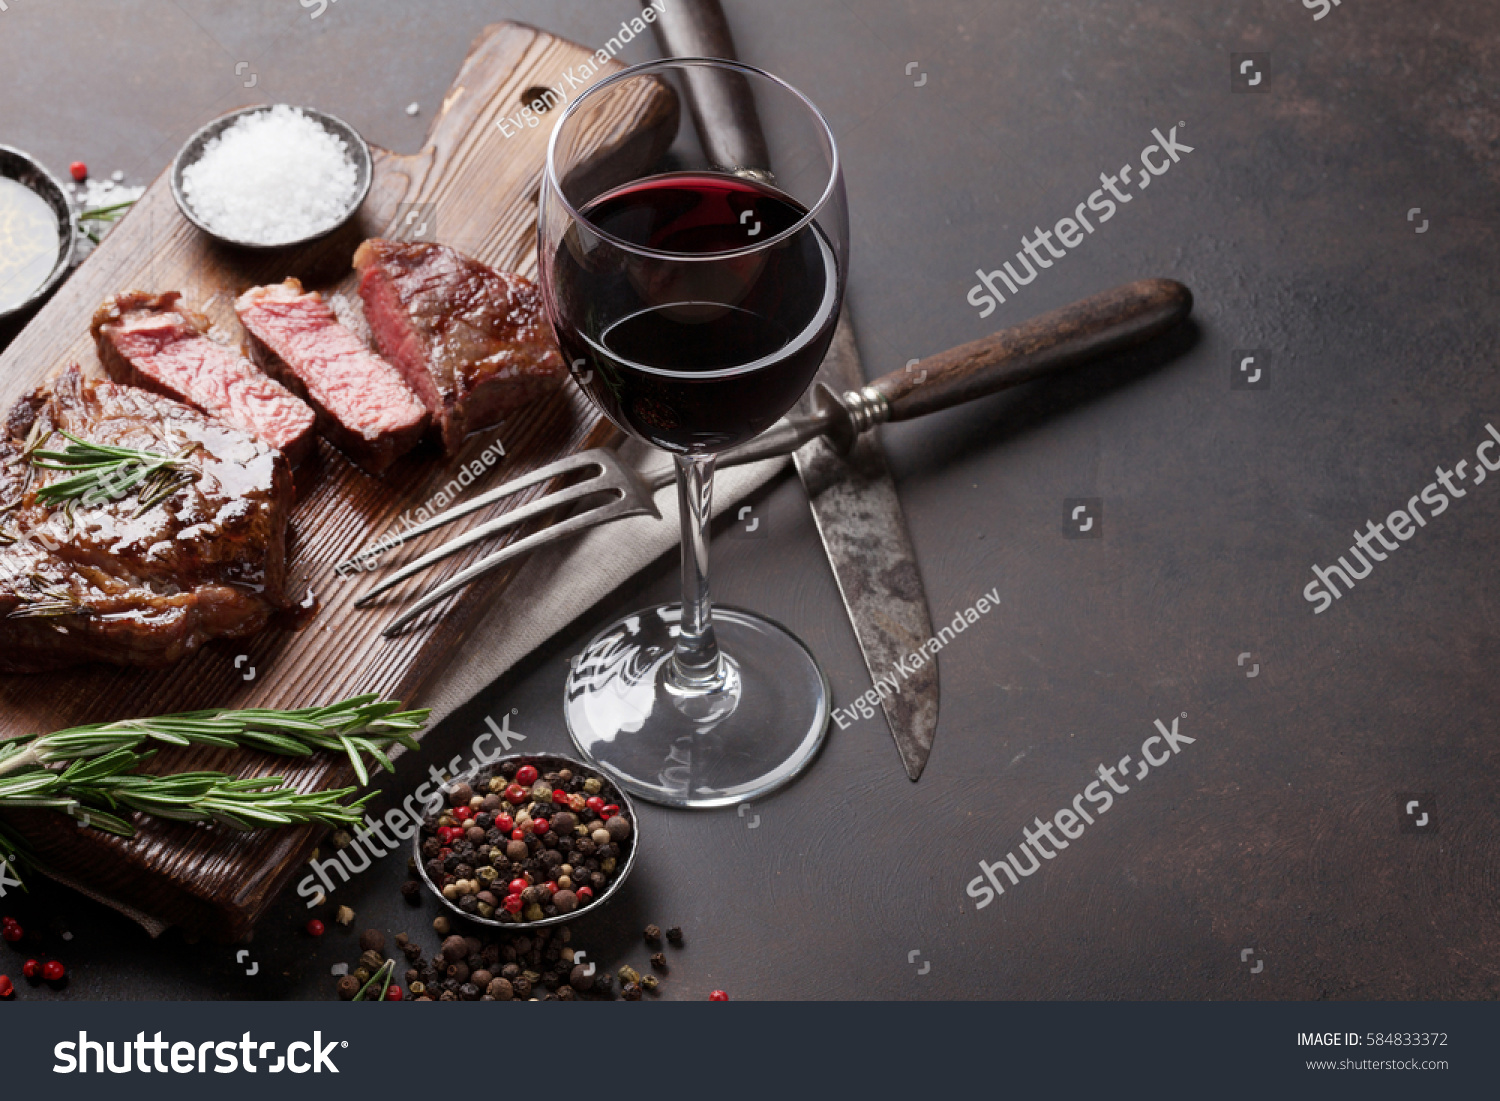 Grilled ribeye beef steak with red wine, herbs and spices on stone table #584833372